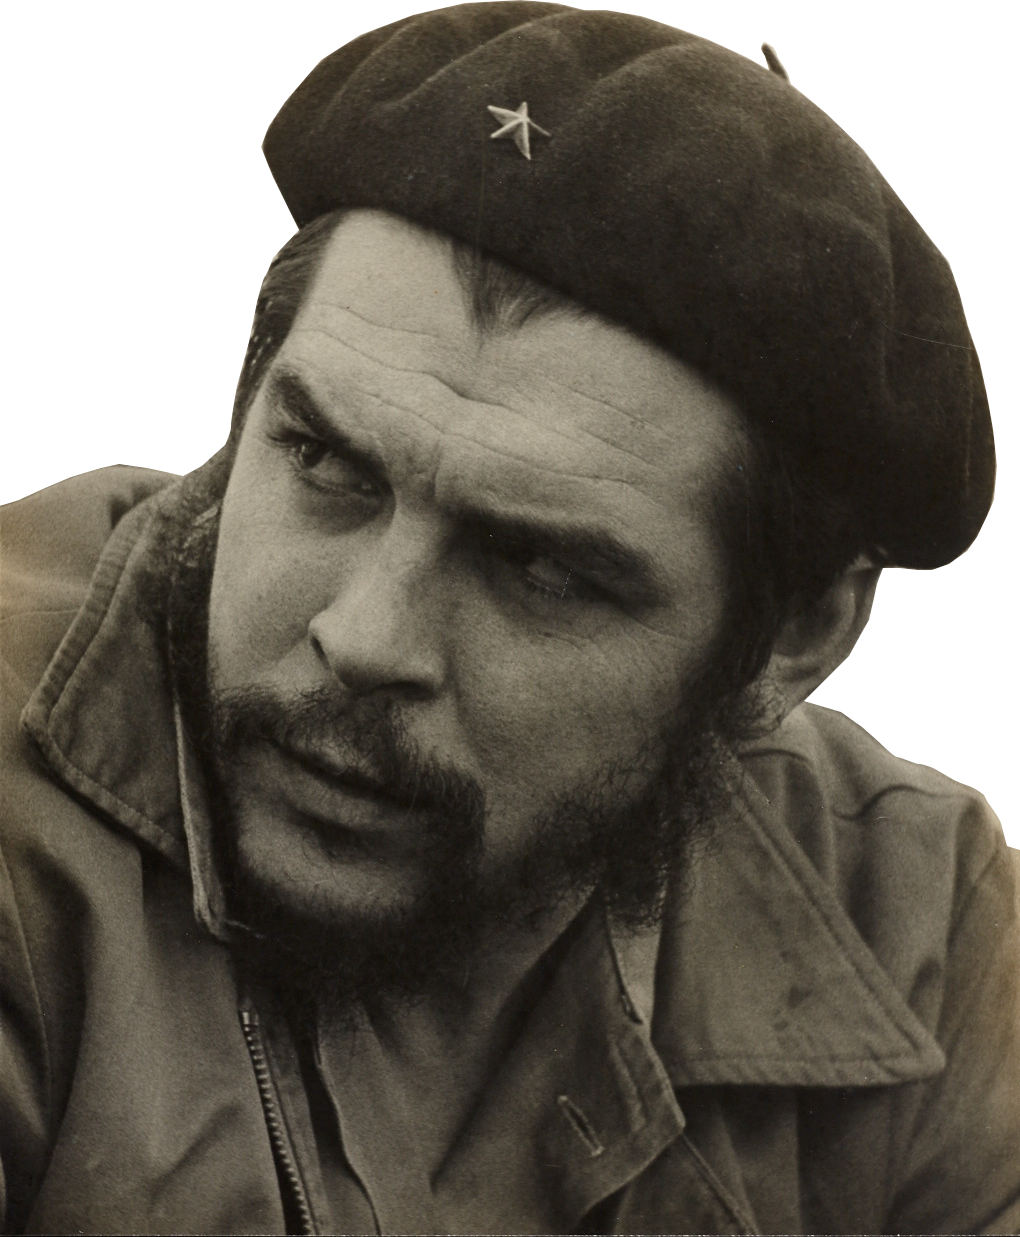 Free download of Che Guevara Transparent PNG File